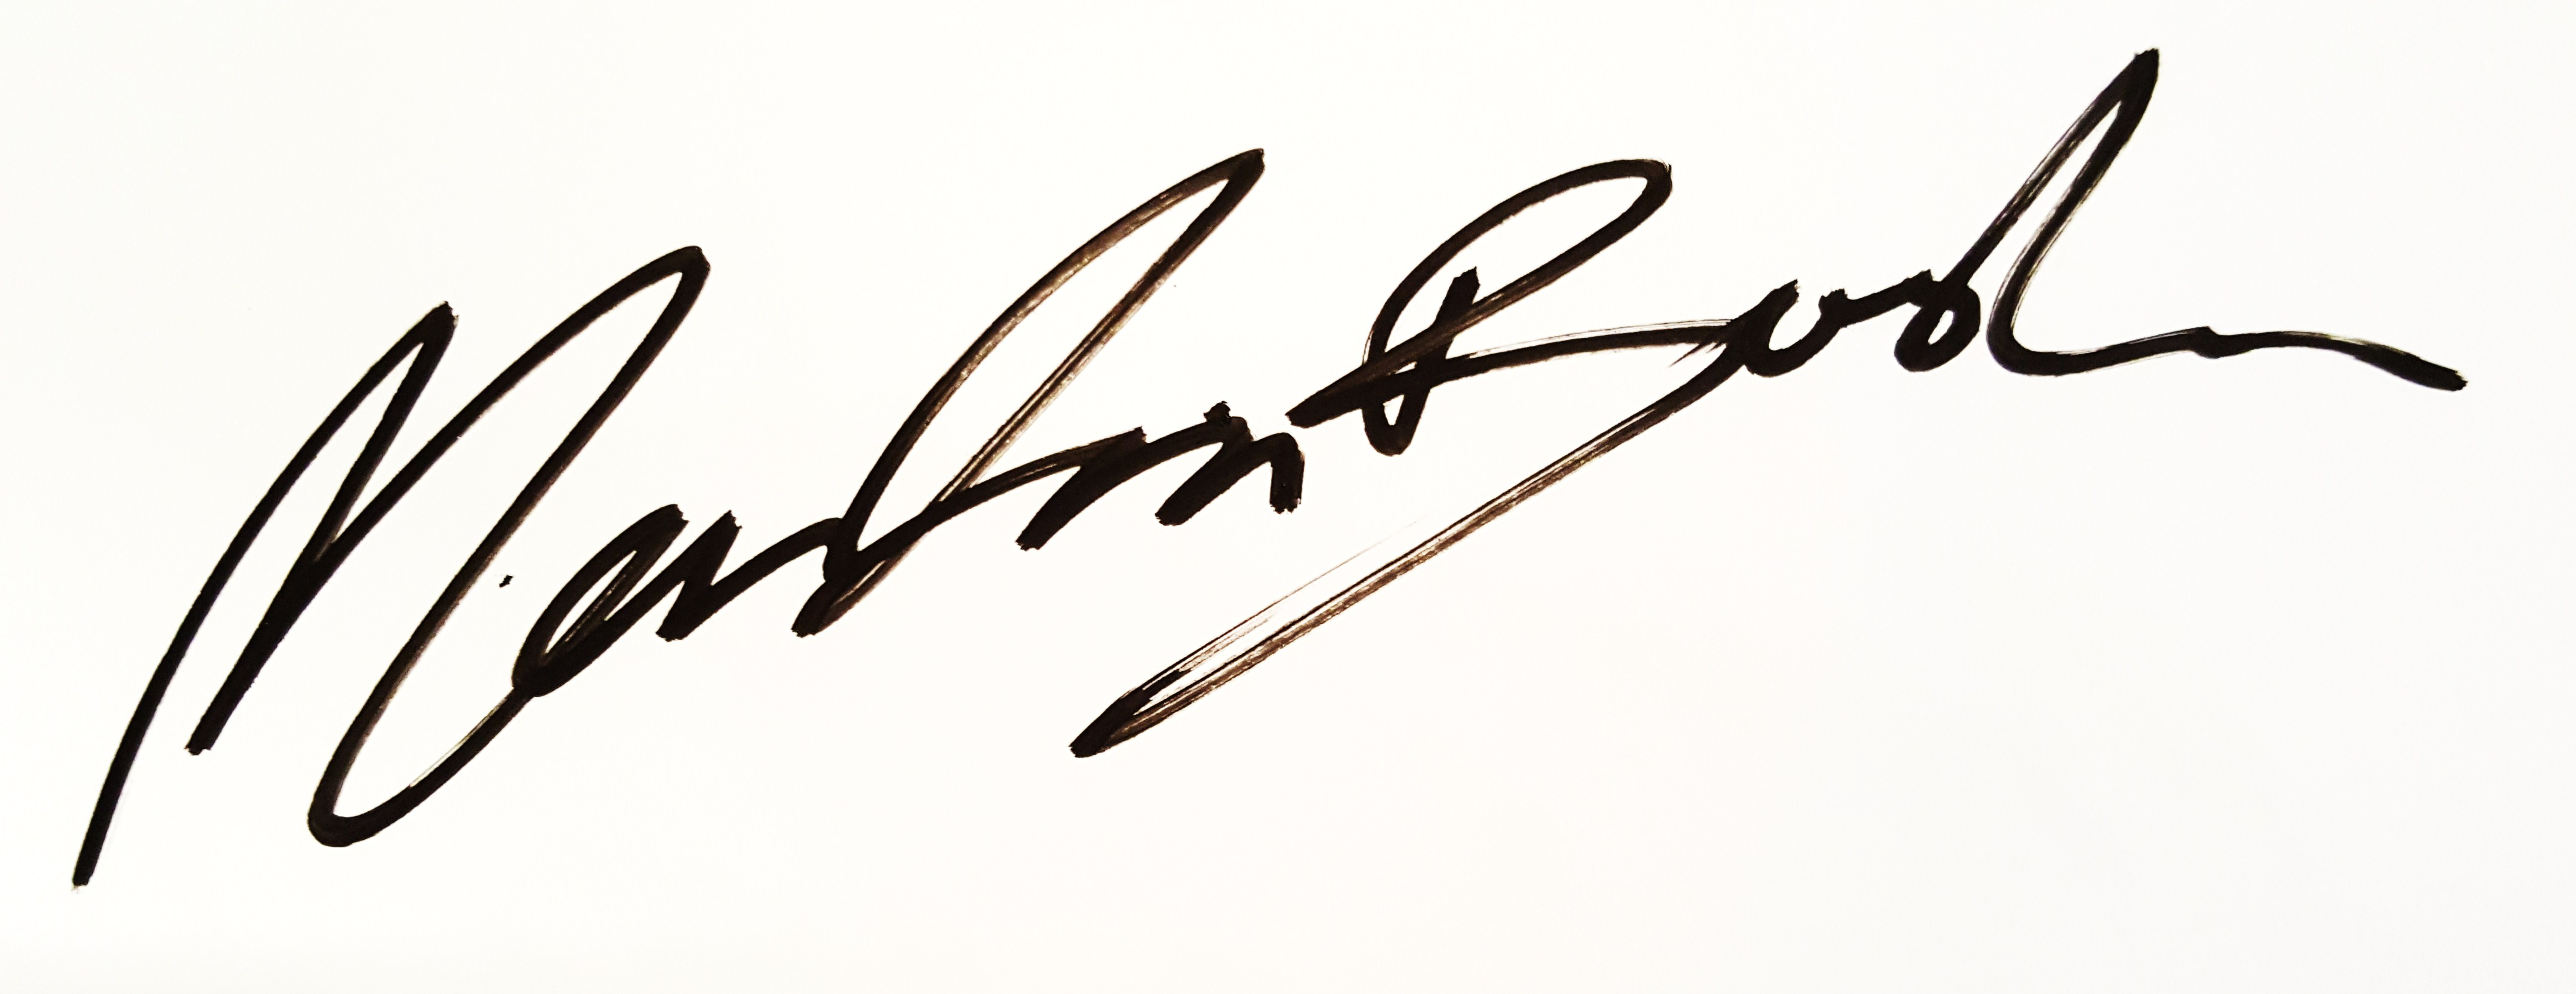 Martin Bush Fine Art's Signature